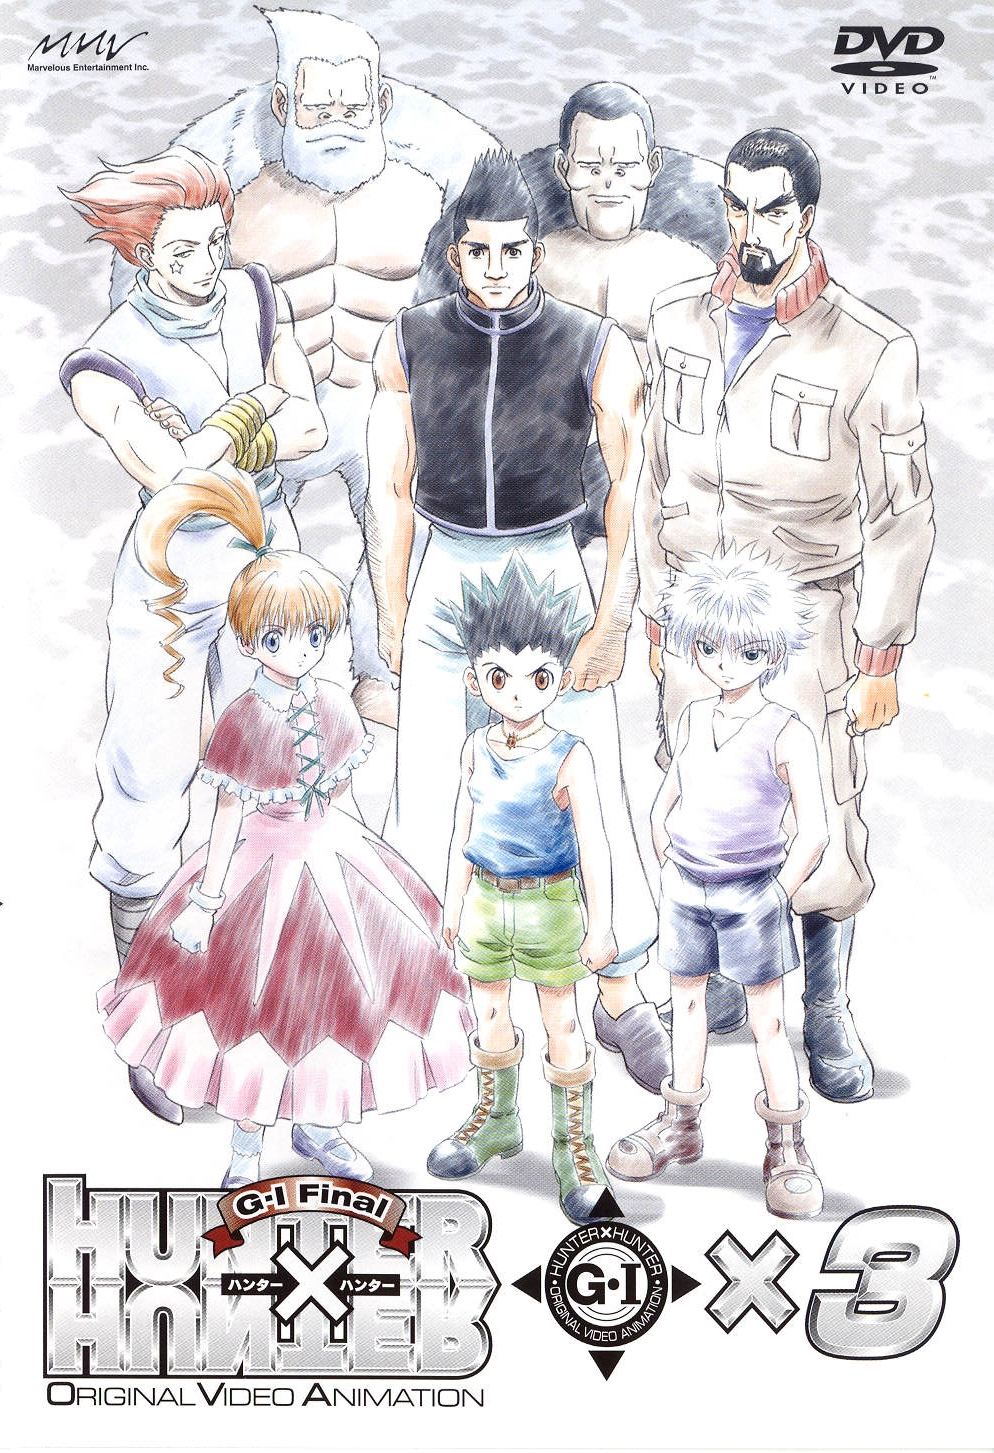 Hxh 1999 Ova Hunter X Hunter Fan Art 35728948 Fanpop